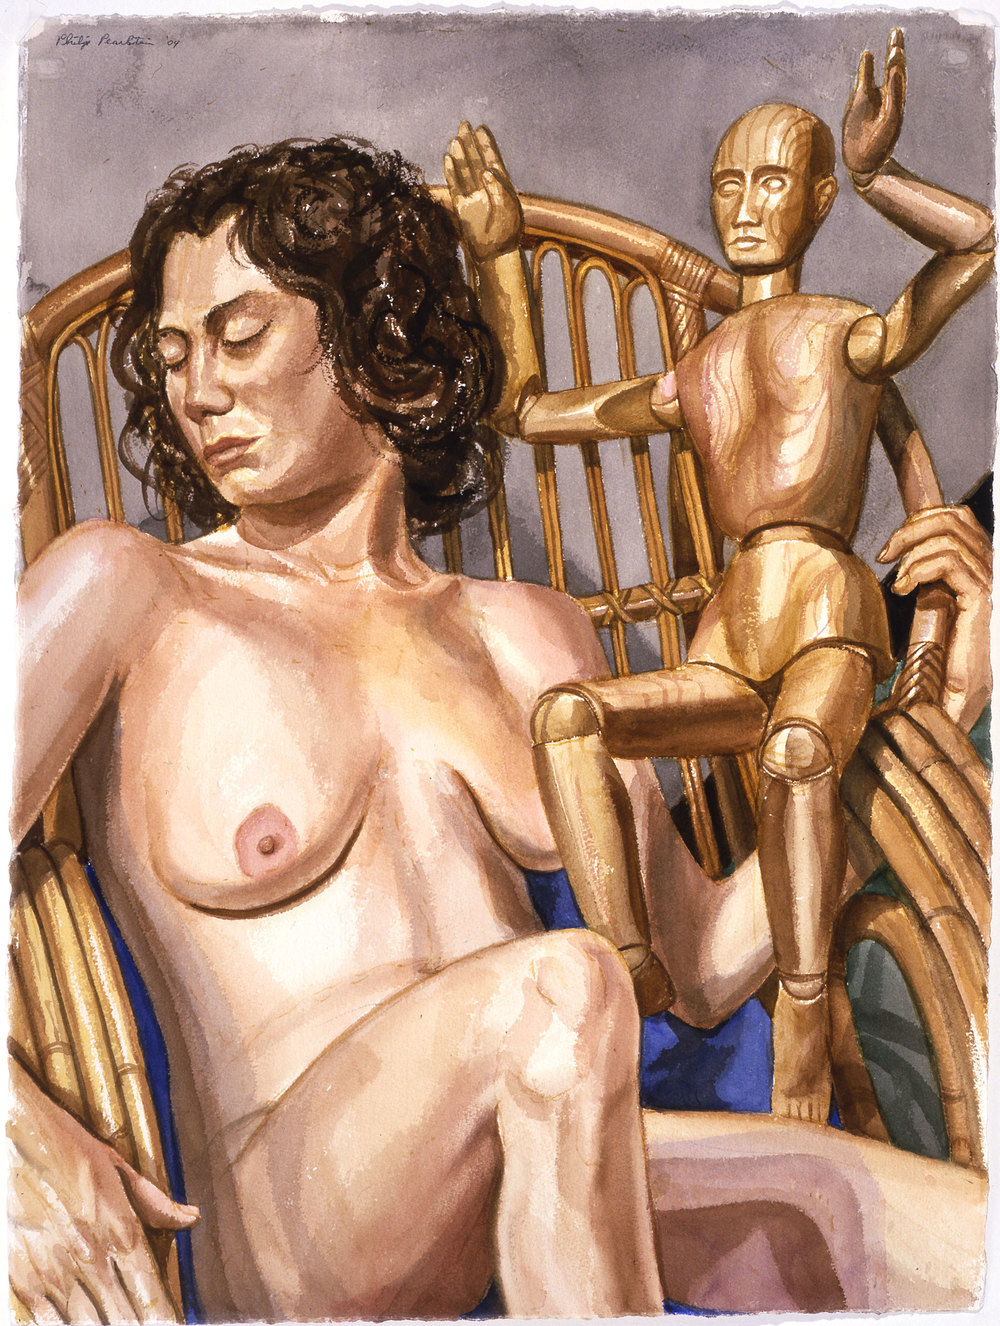 A MODEL WITH ARTIST MANNEQUIN , 2004 Watercolor on paper 30 x 22 1/4 inches